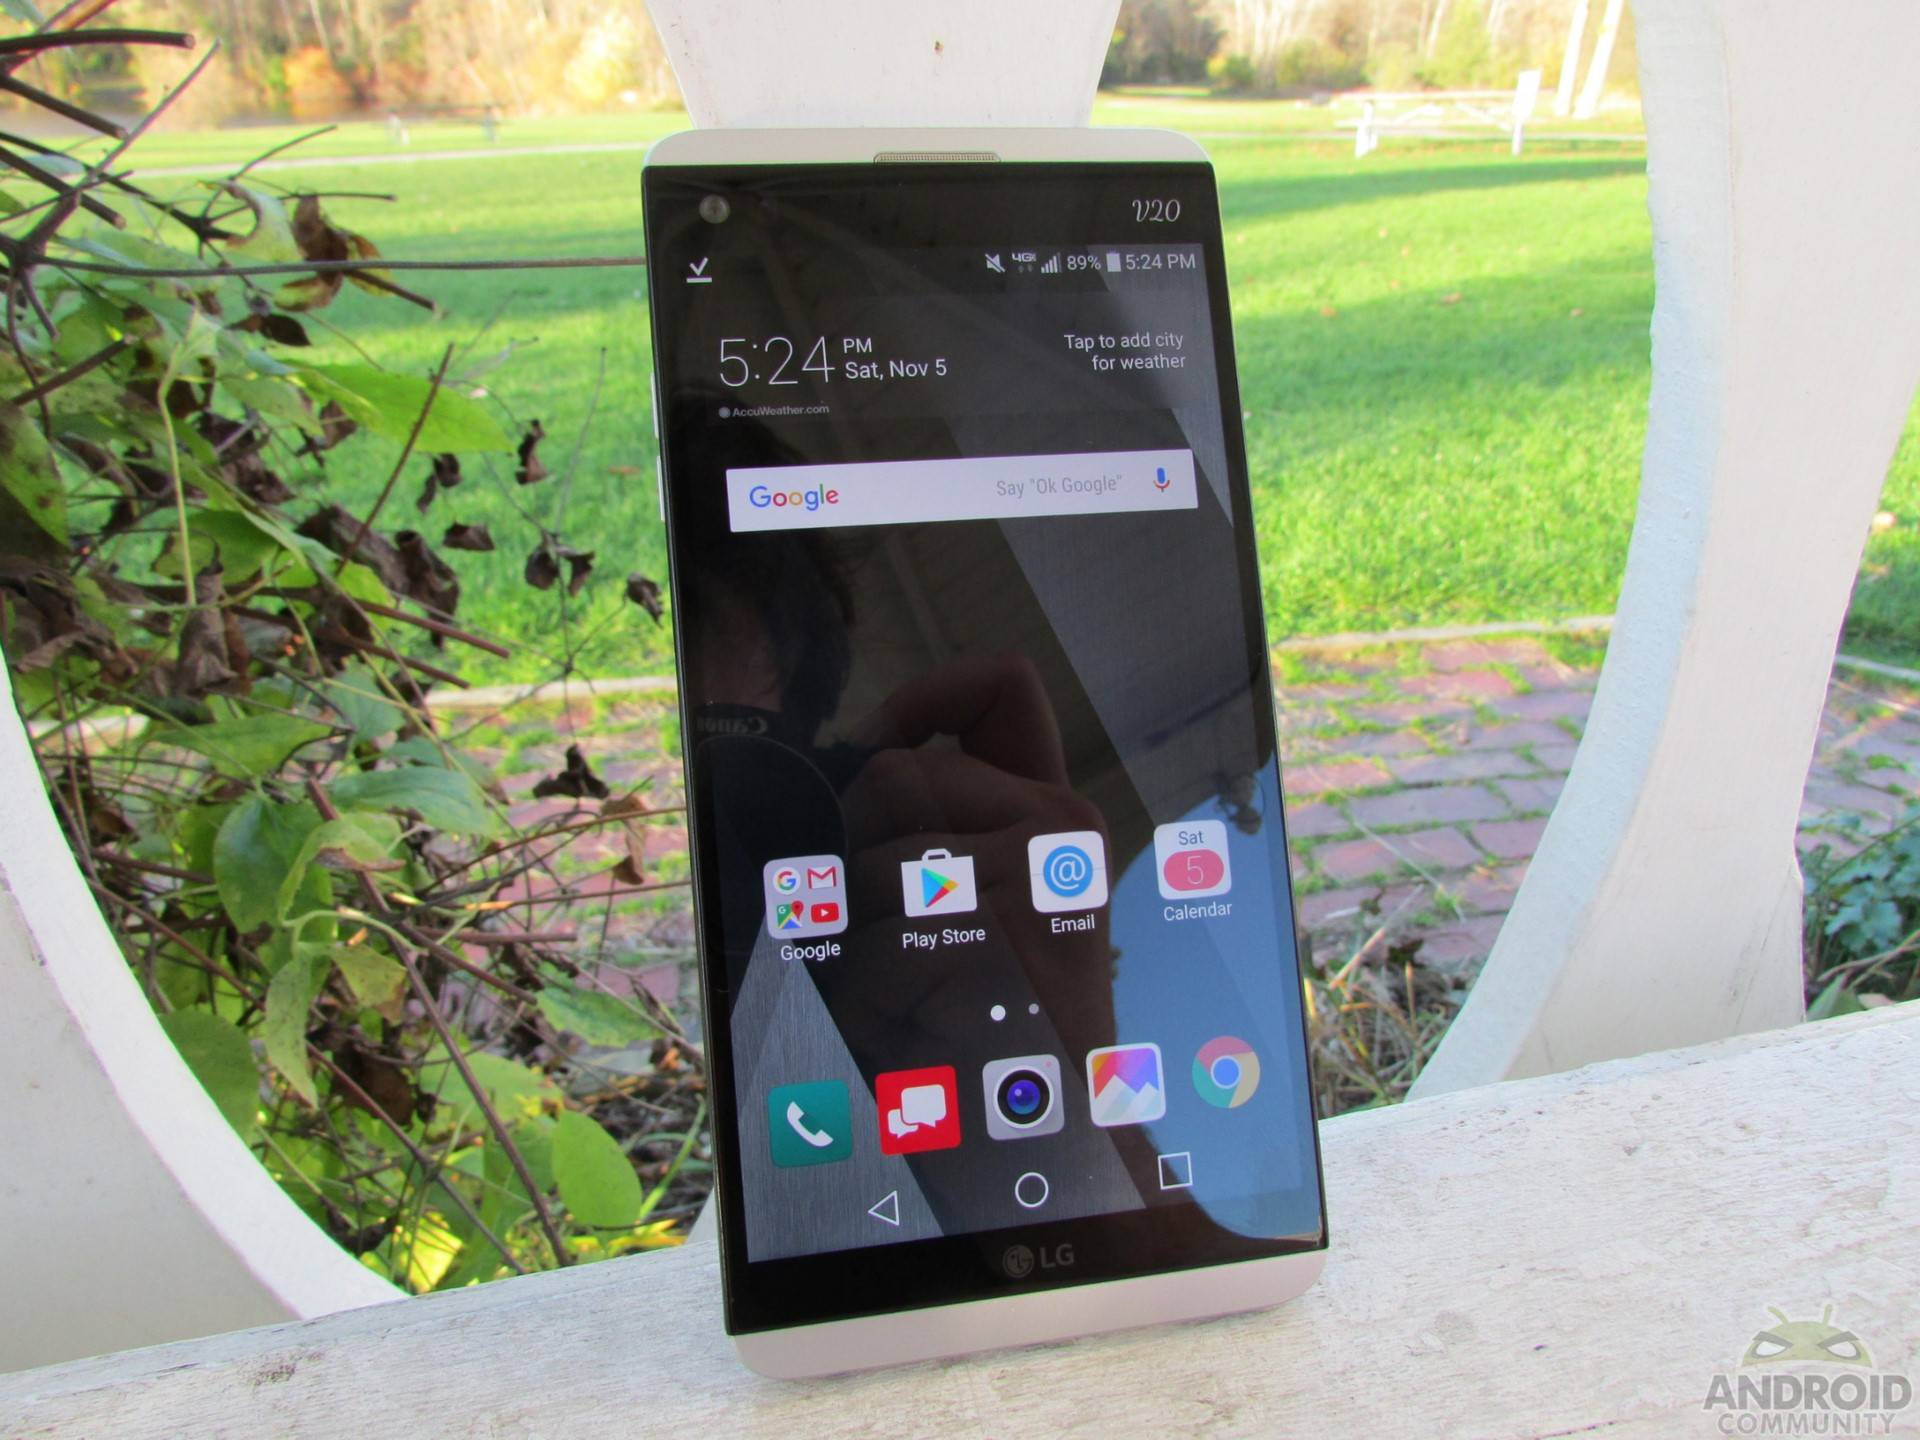 LG V20 Review: LG's time to shine - Android Community